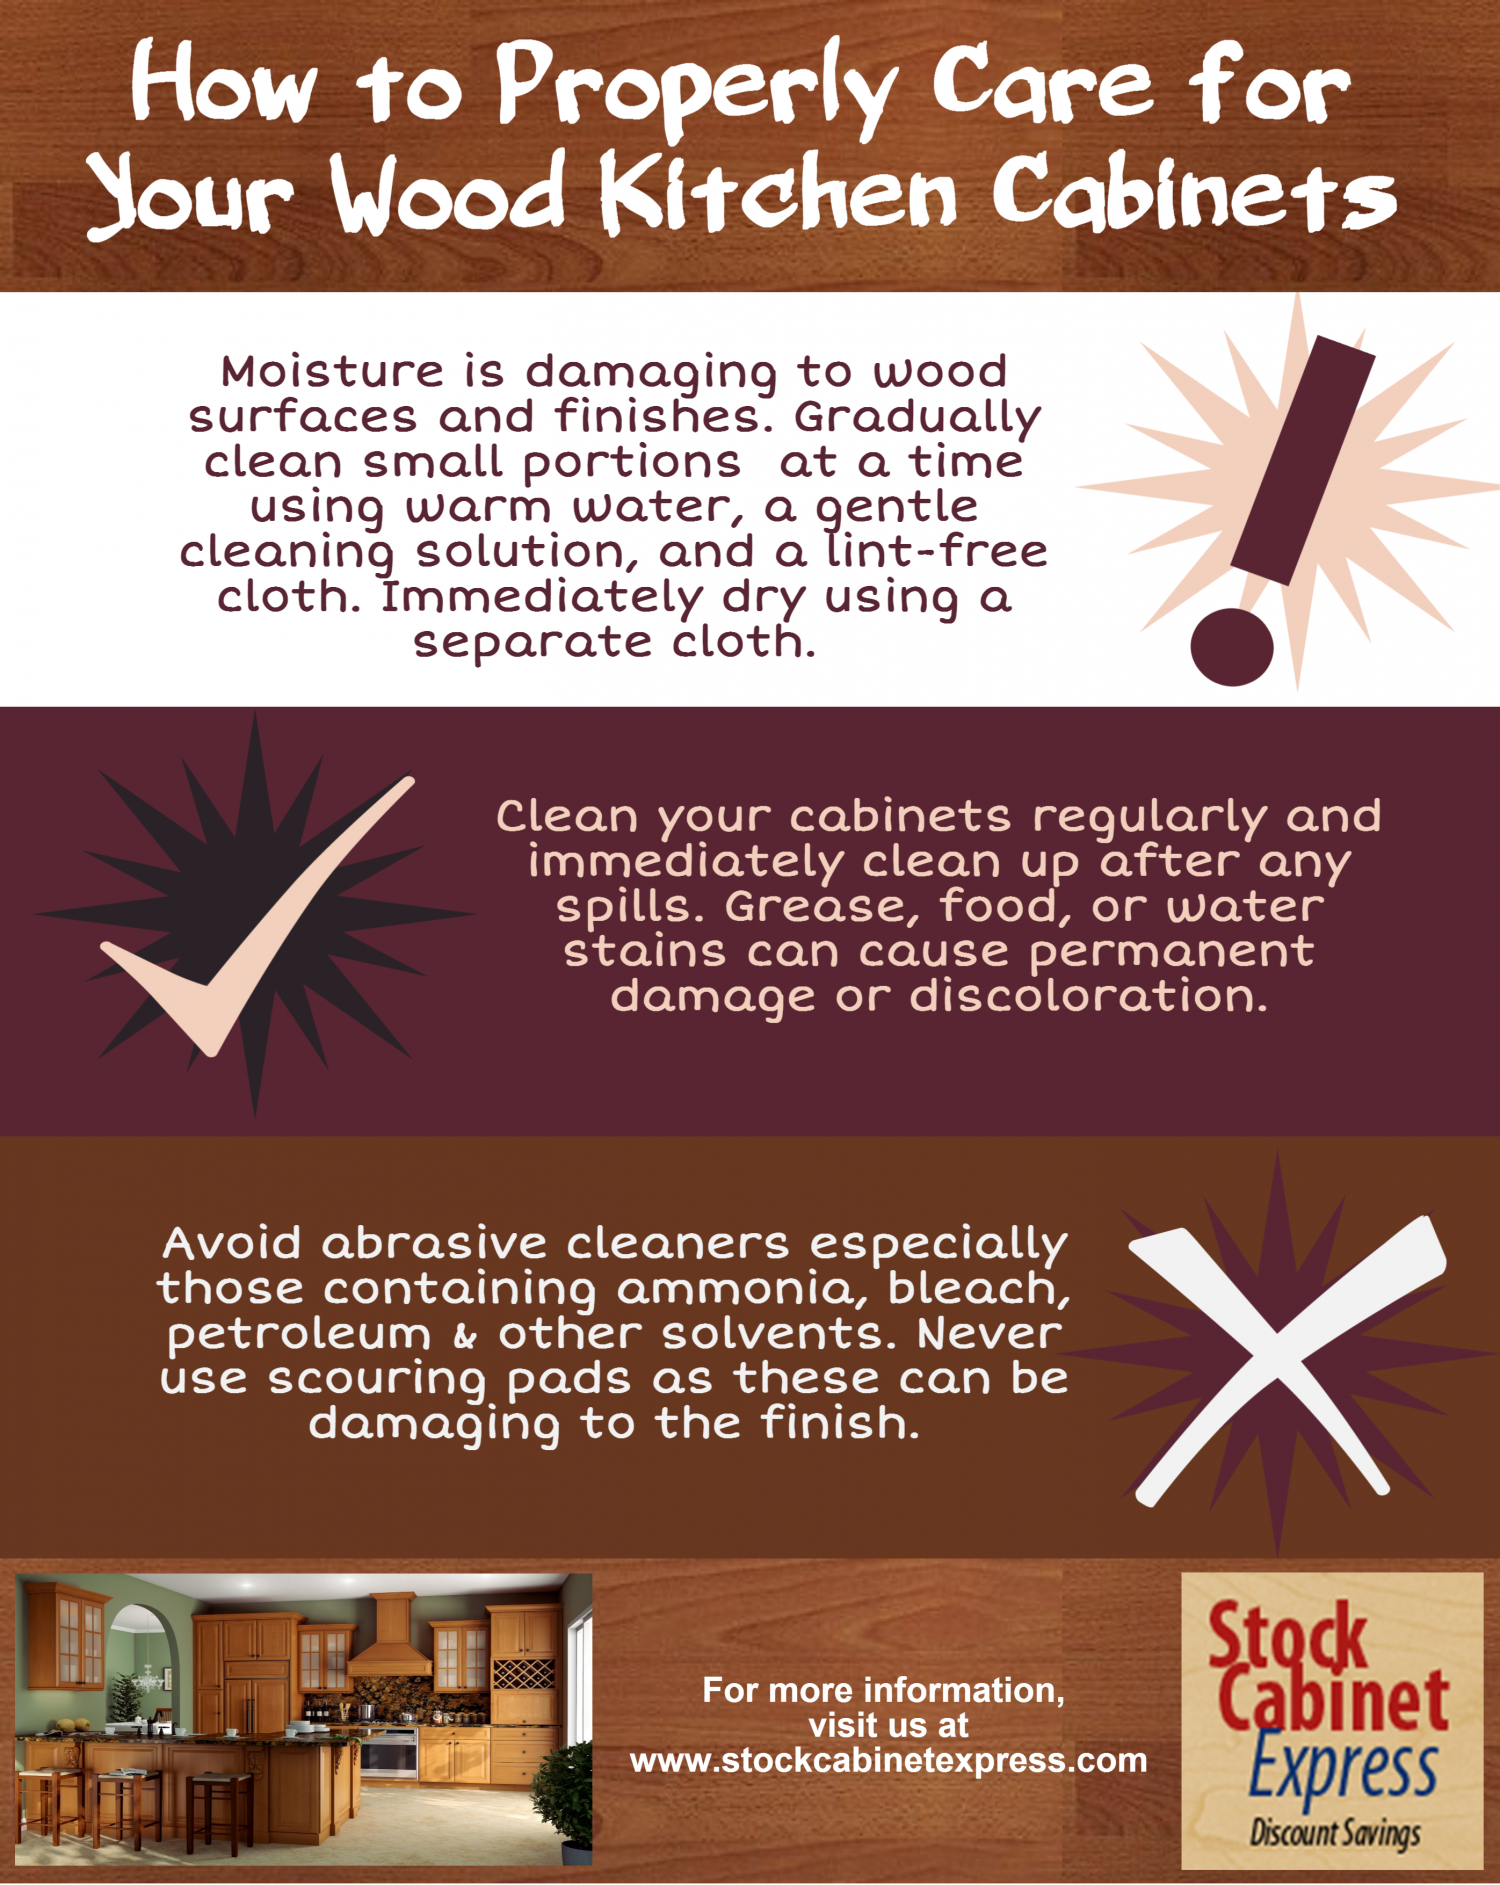 How to Properly Care for Your Kitchen Cabinets Infographic